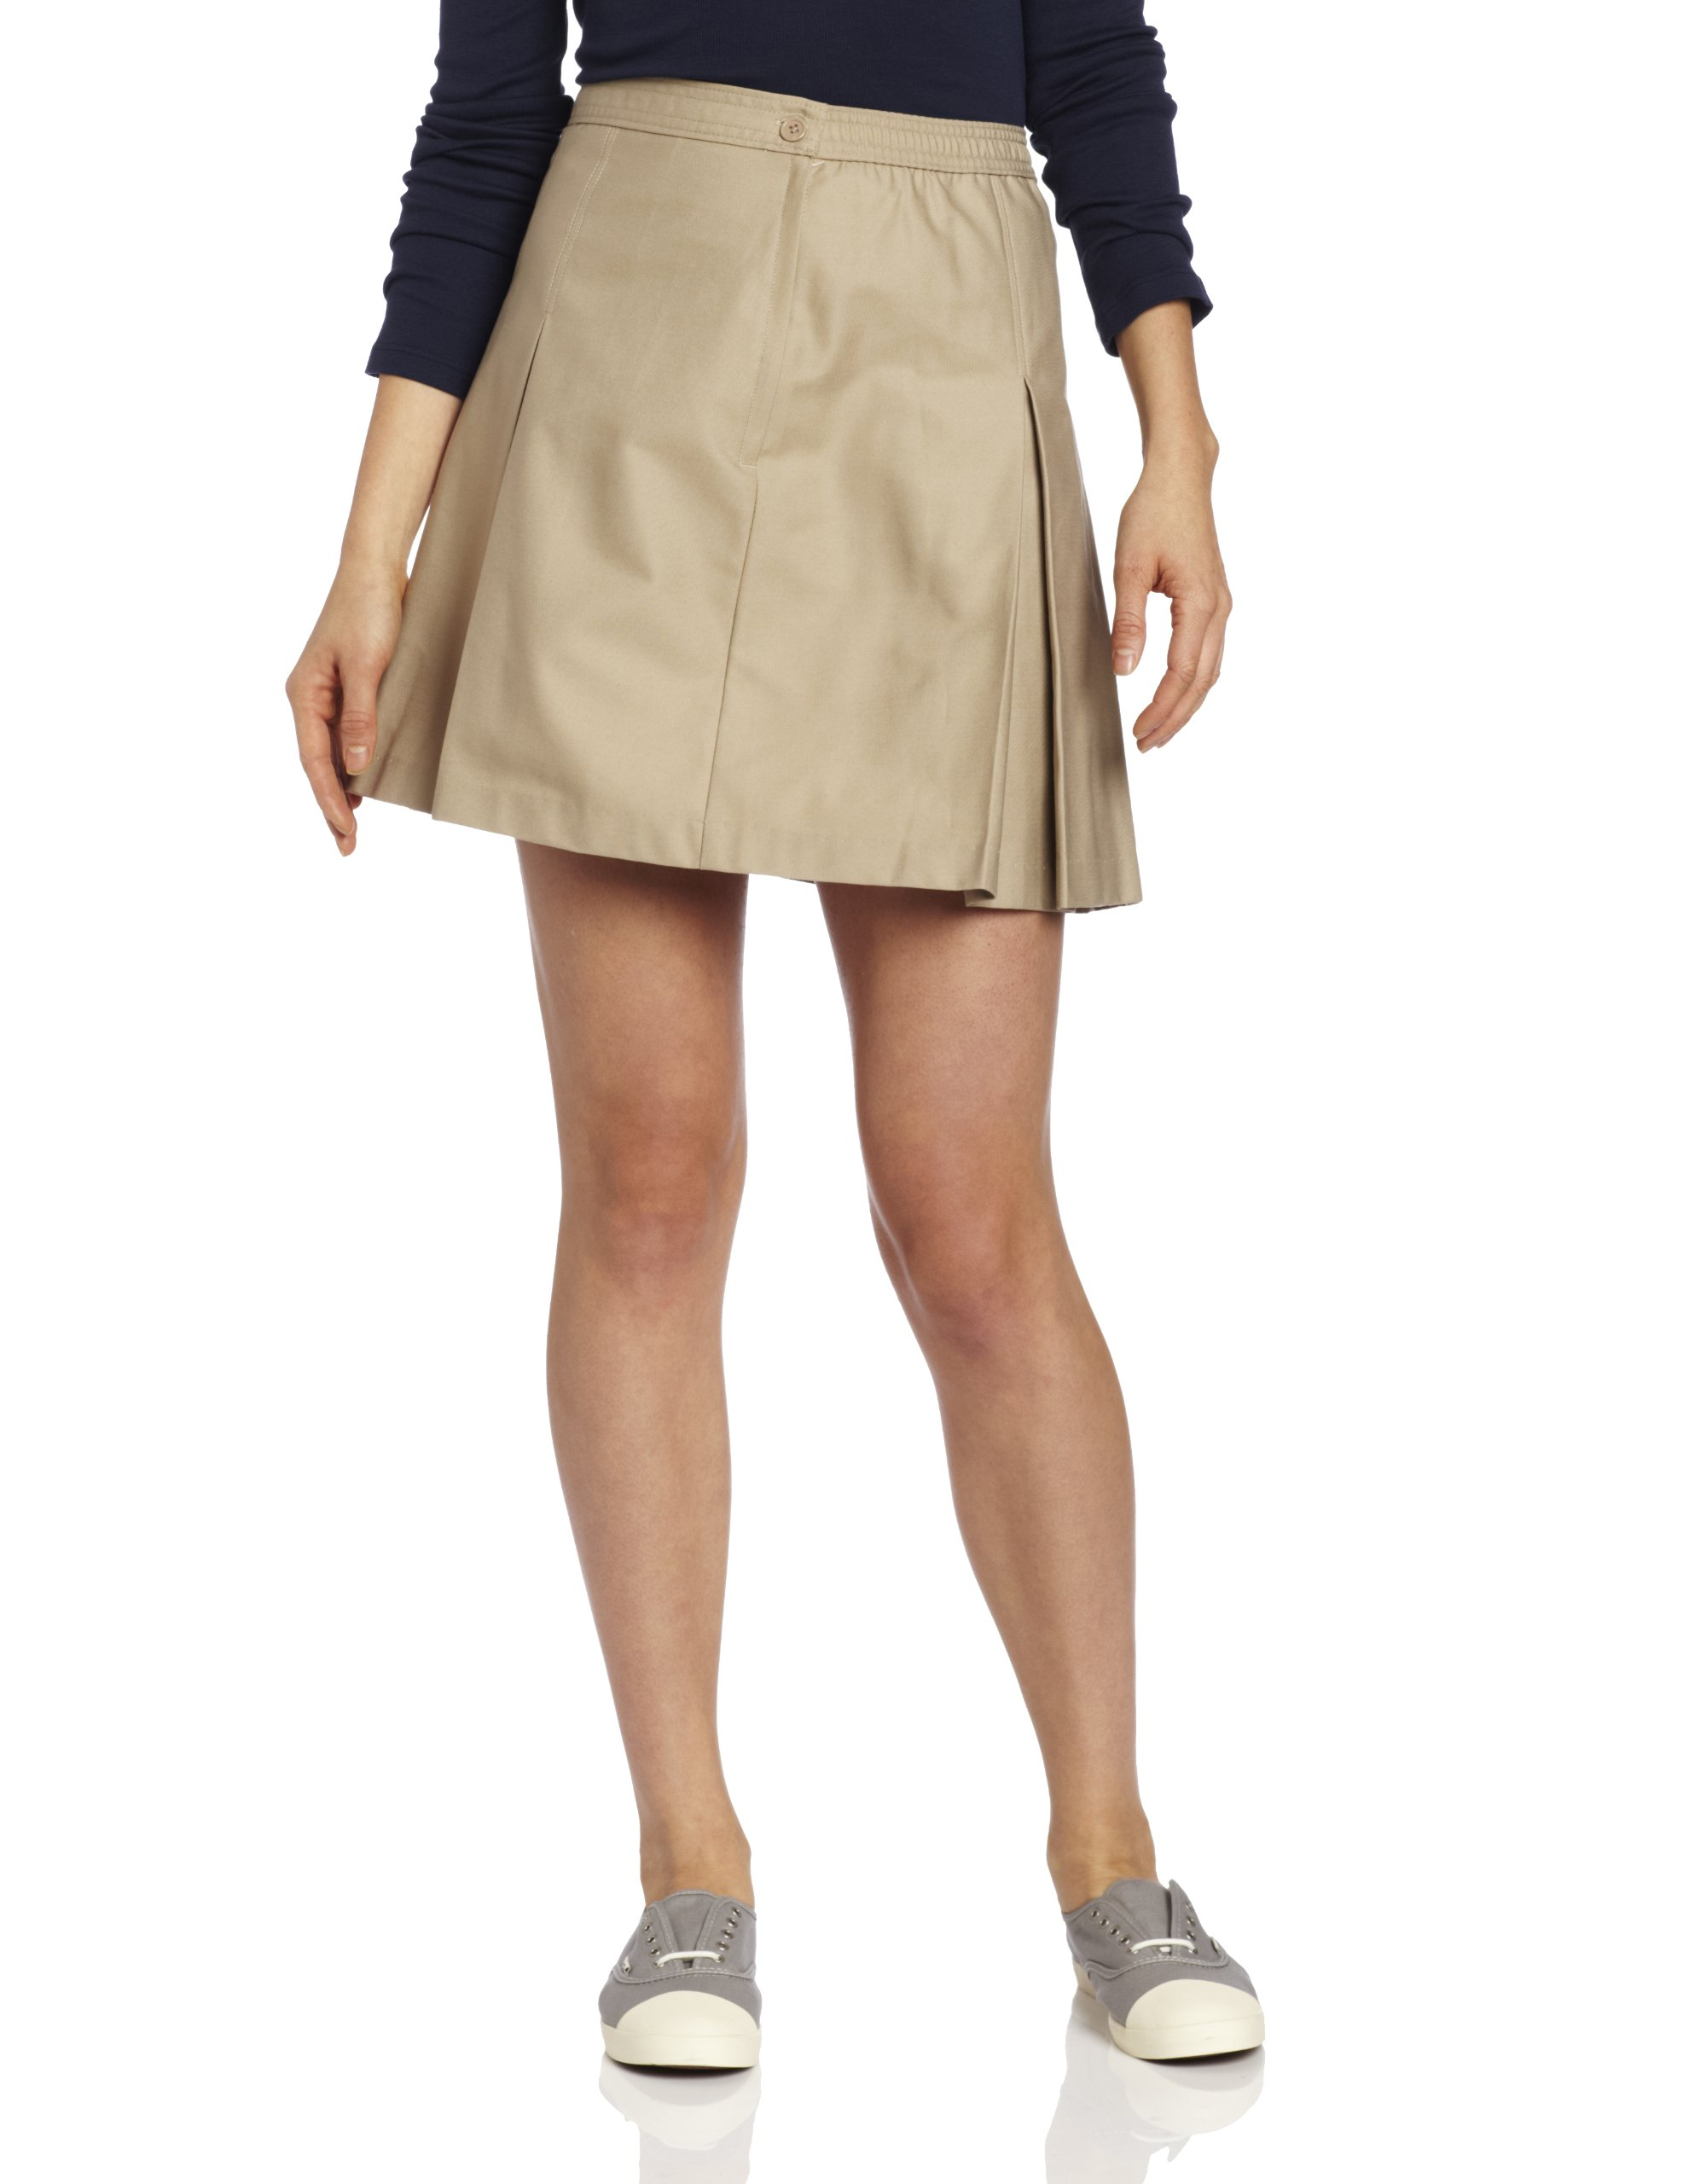 Classroom Uniforms 55864 Junior's Kick Pleat Skirt